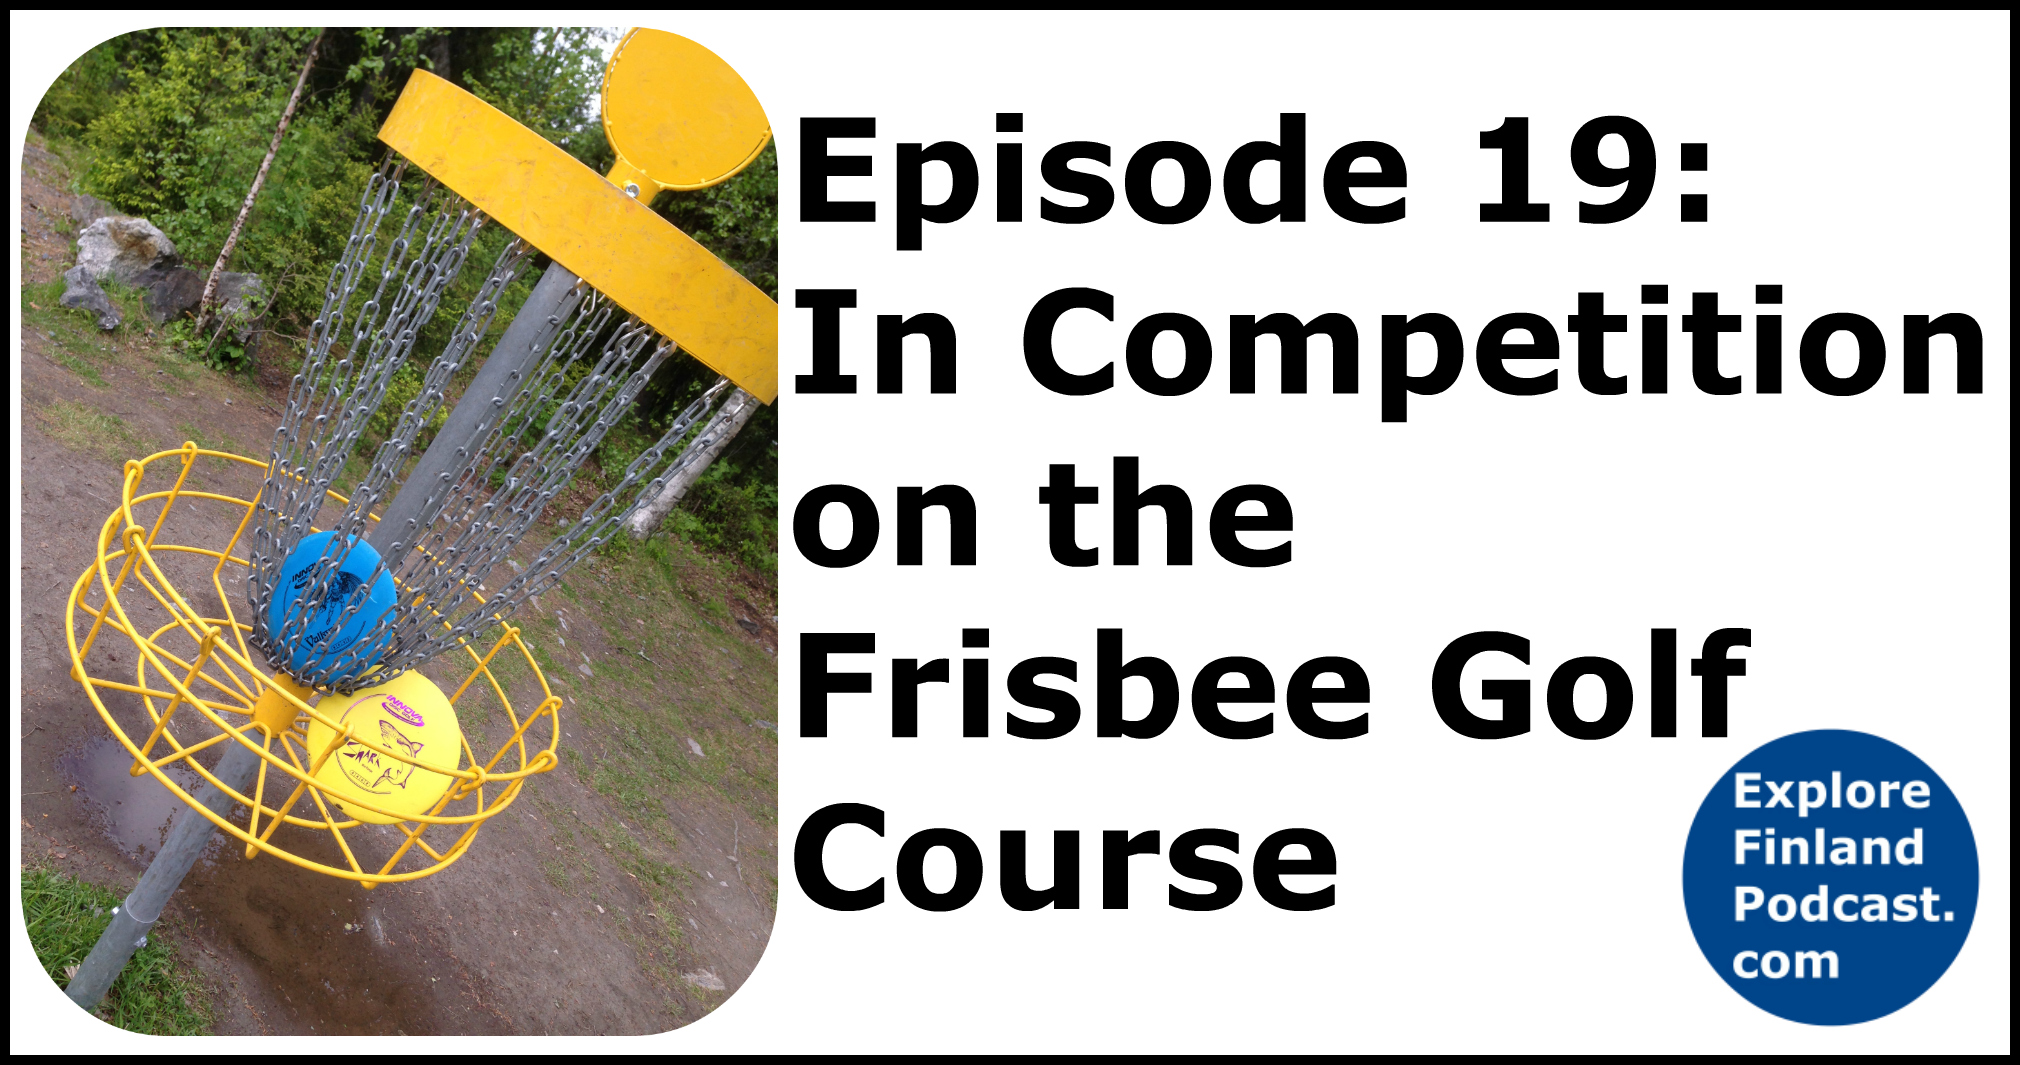 Disc Golf Course Equipment ~ In competition on the frisbee golf course explore